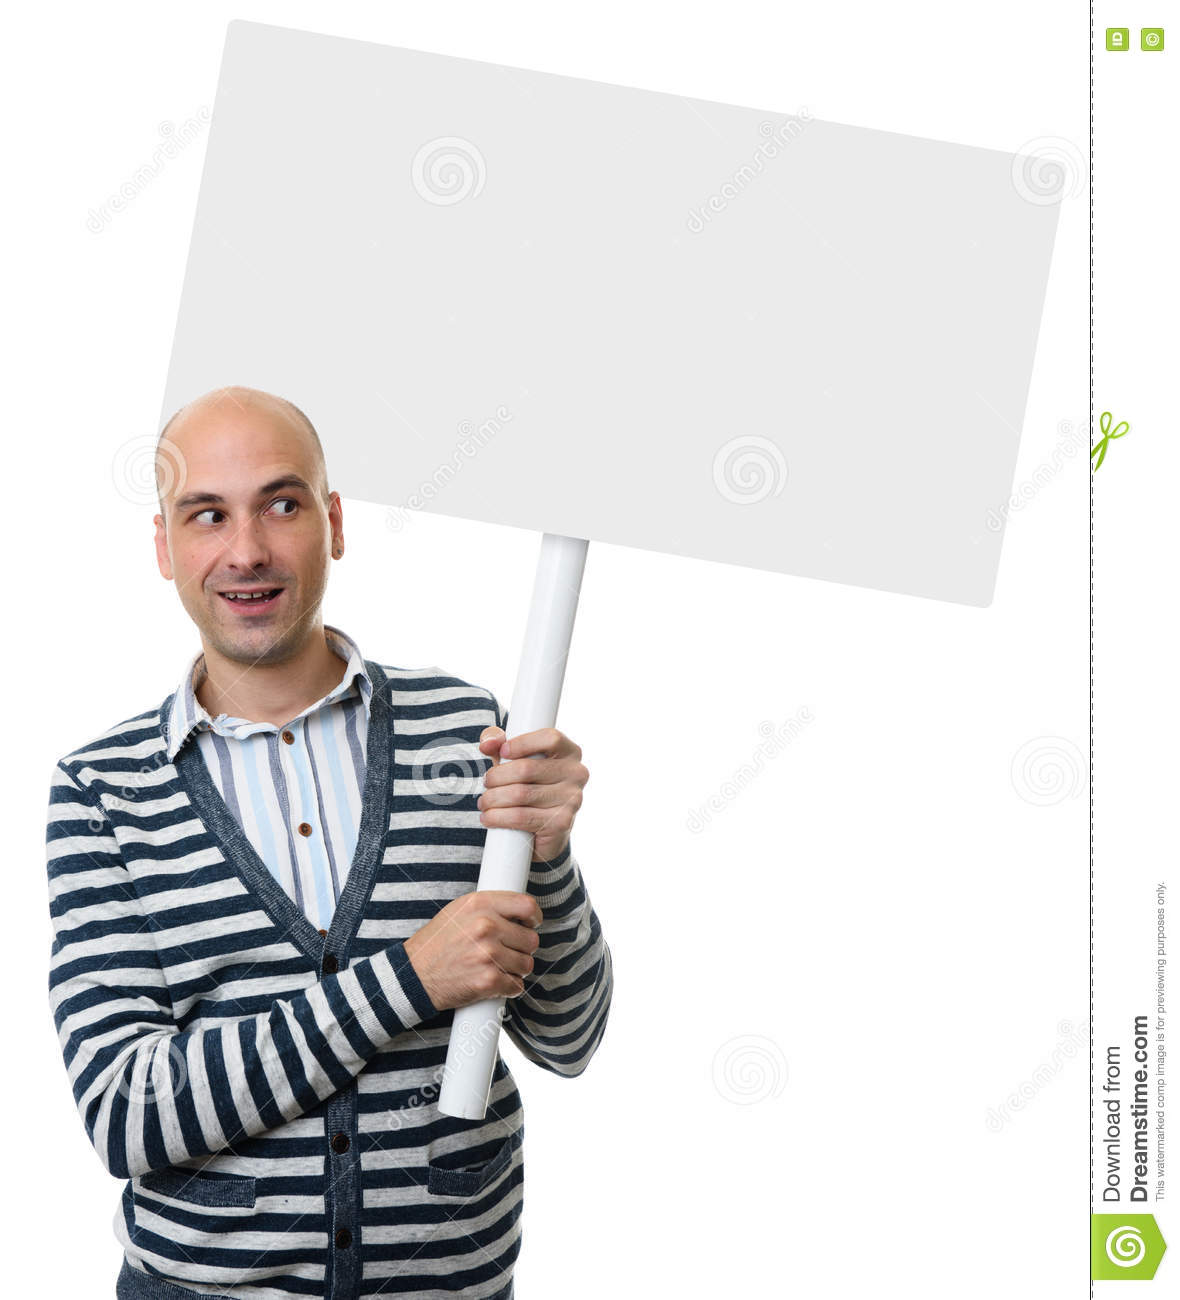 Casual Bald Man Holding Placard On A Stick Stock Photo